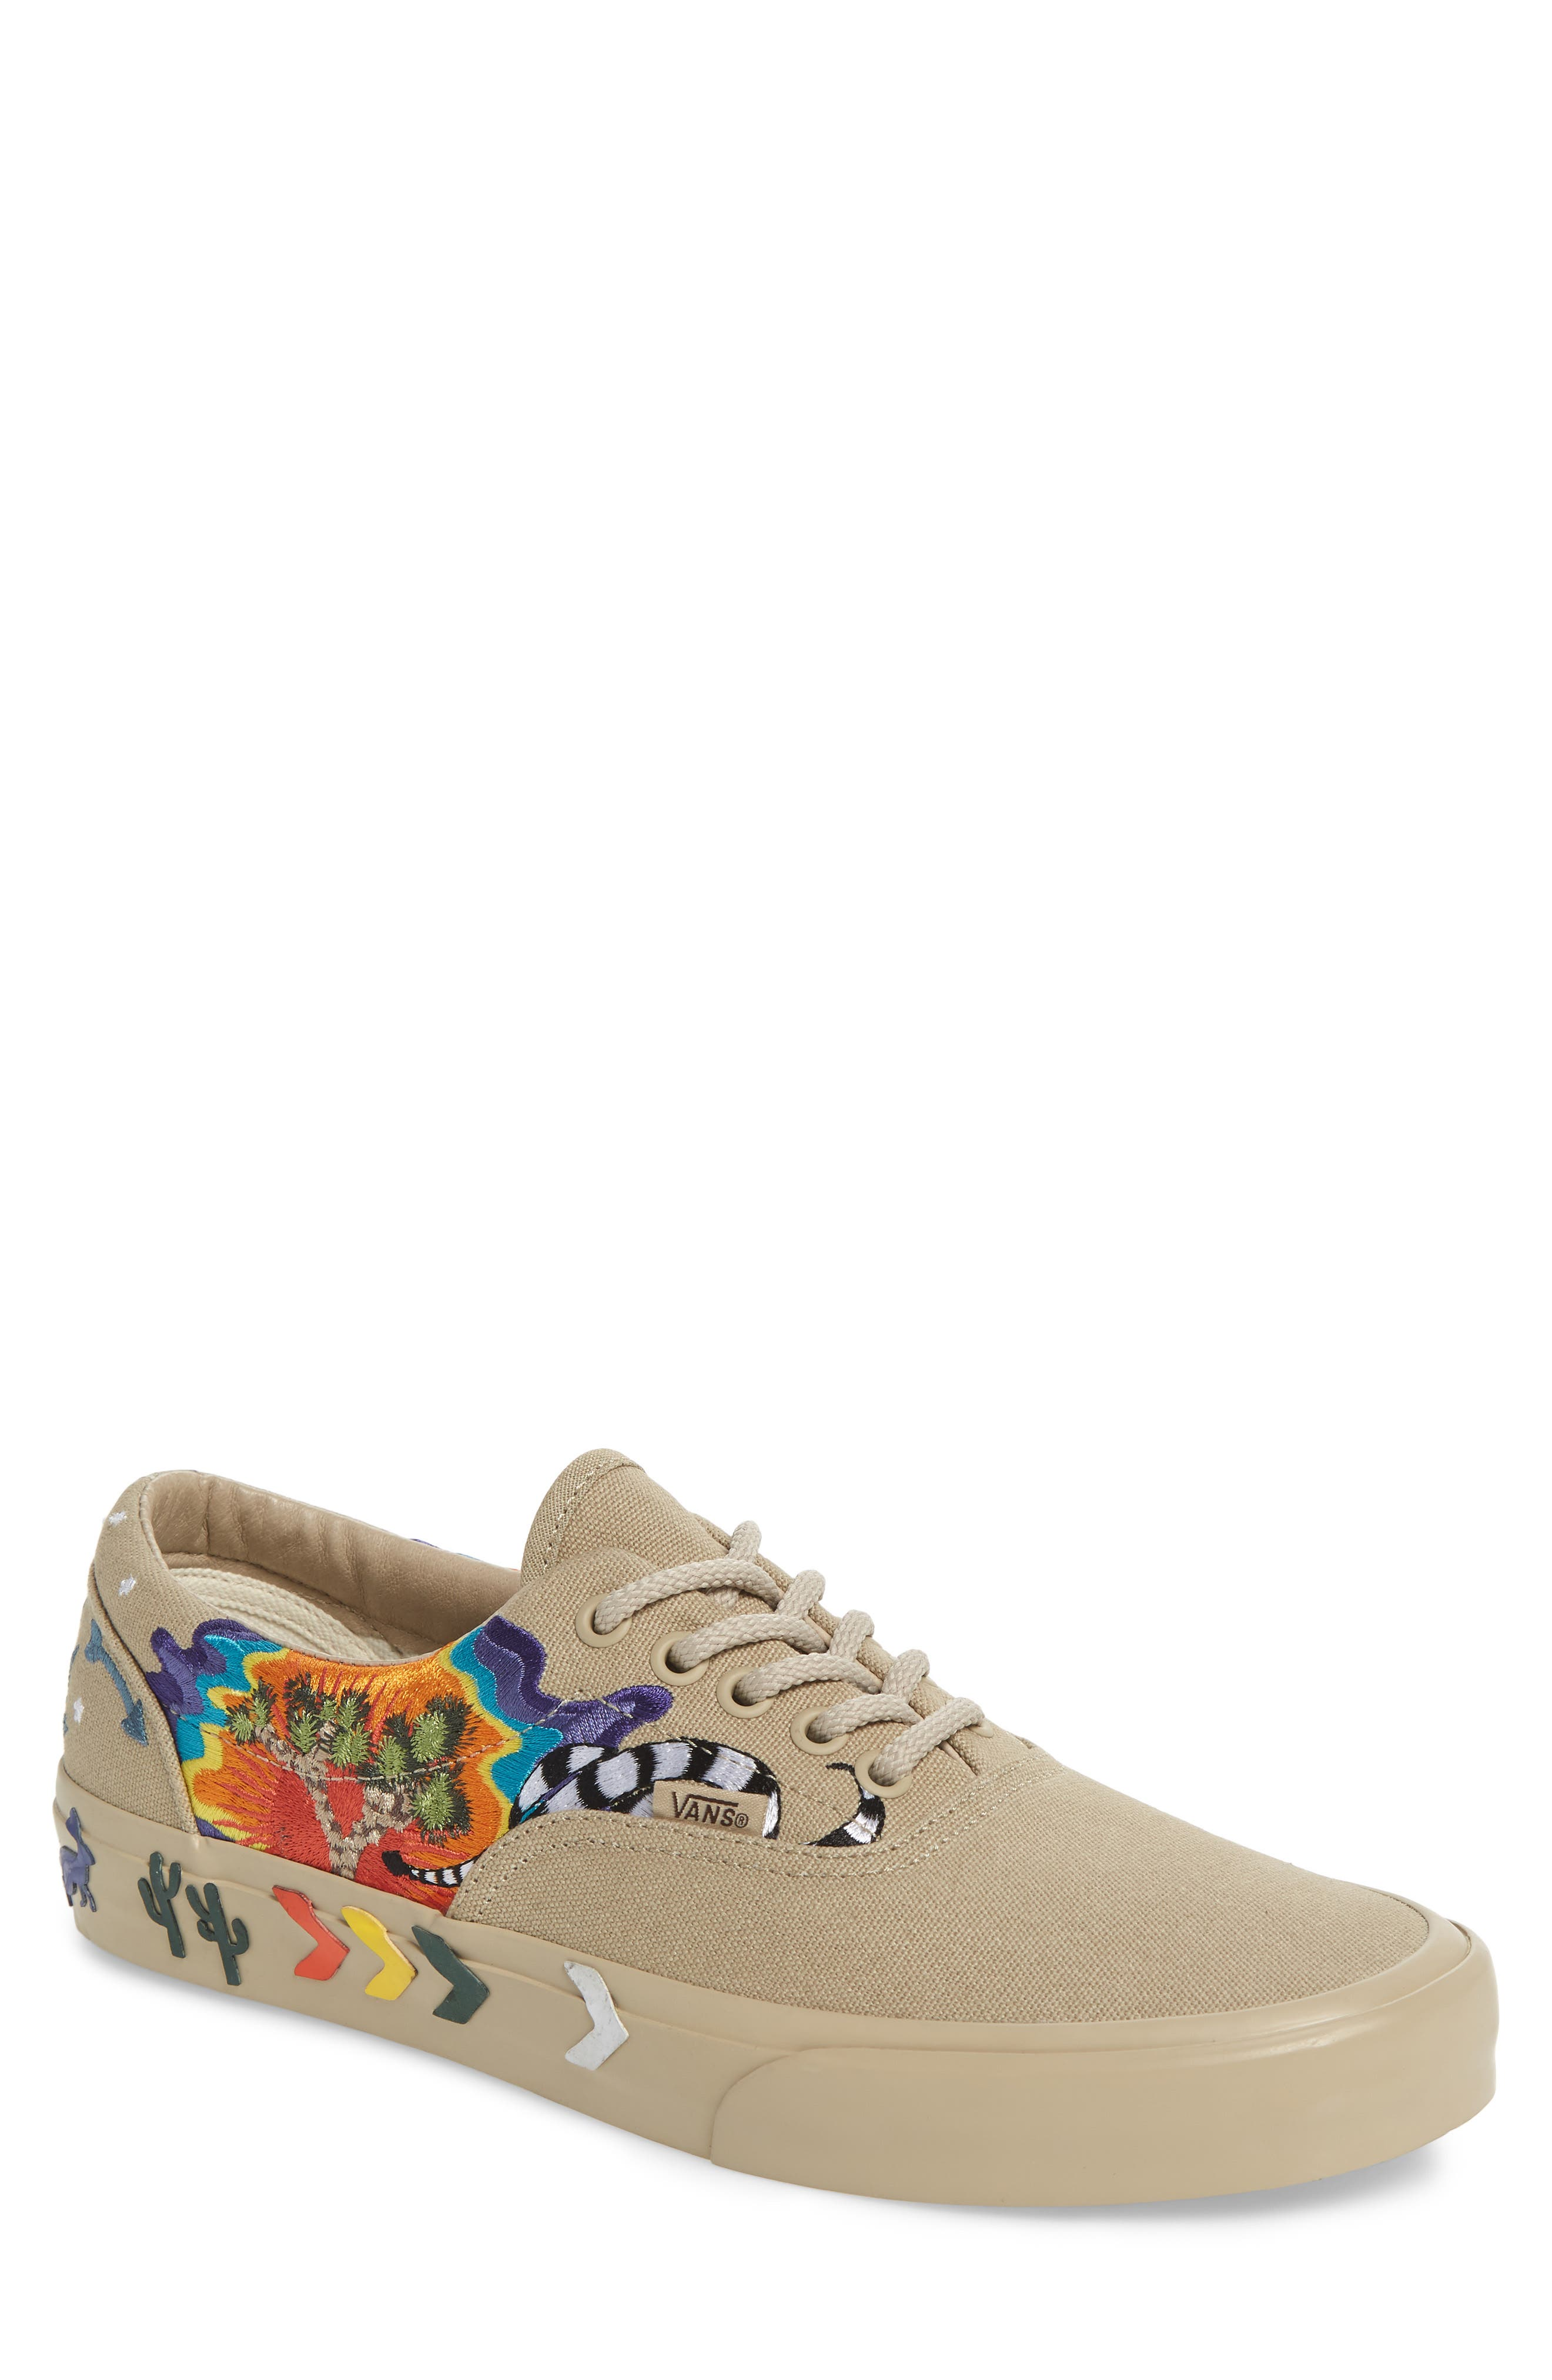 Vans Men's Desert Embellish Era Sneaker